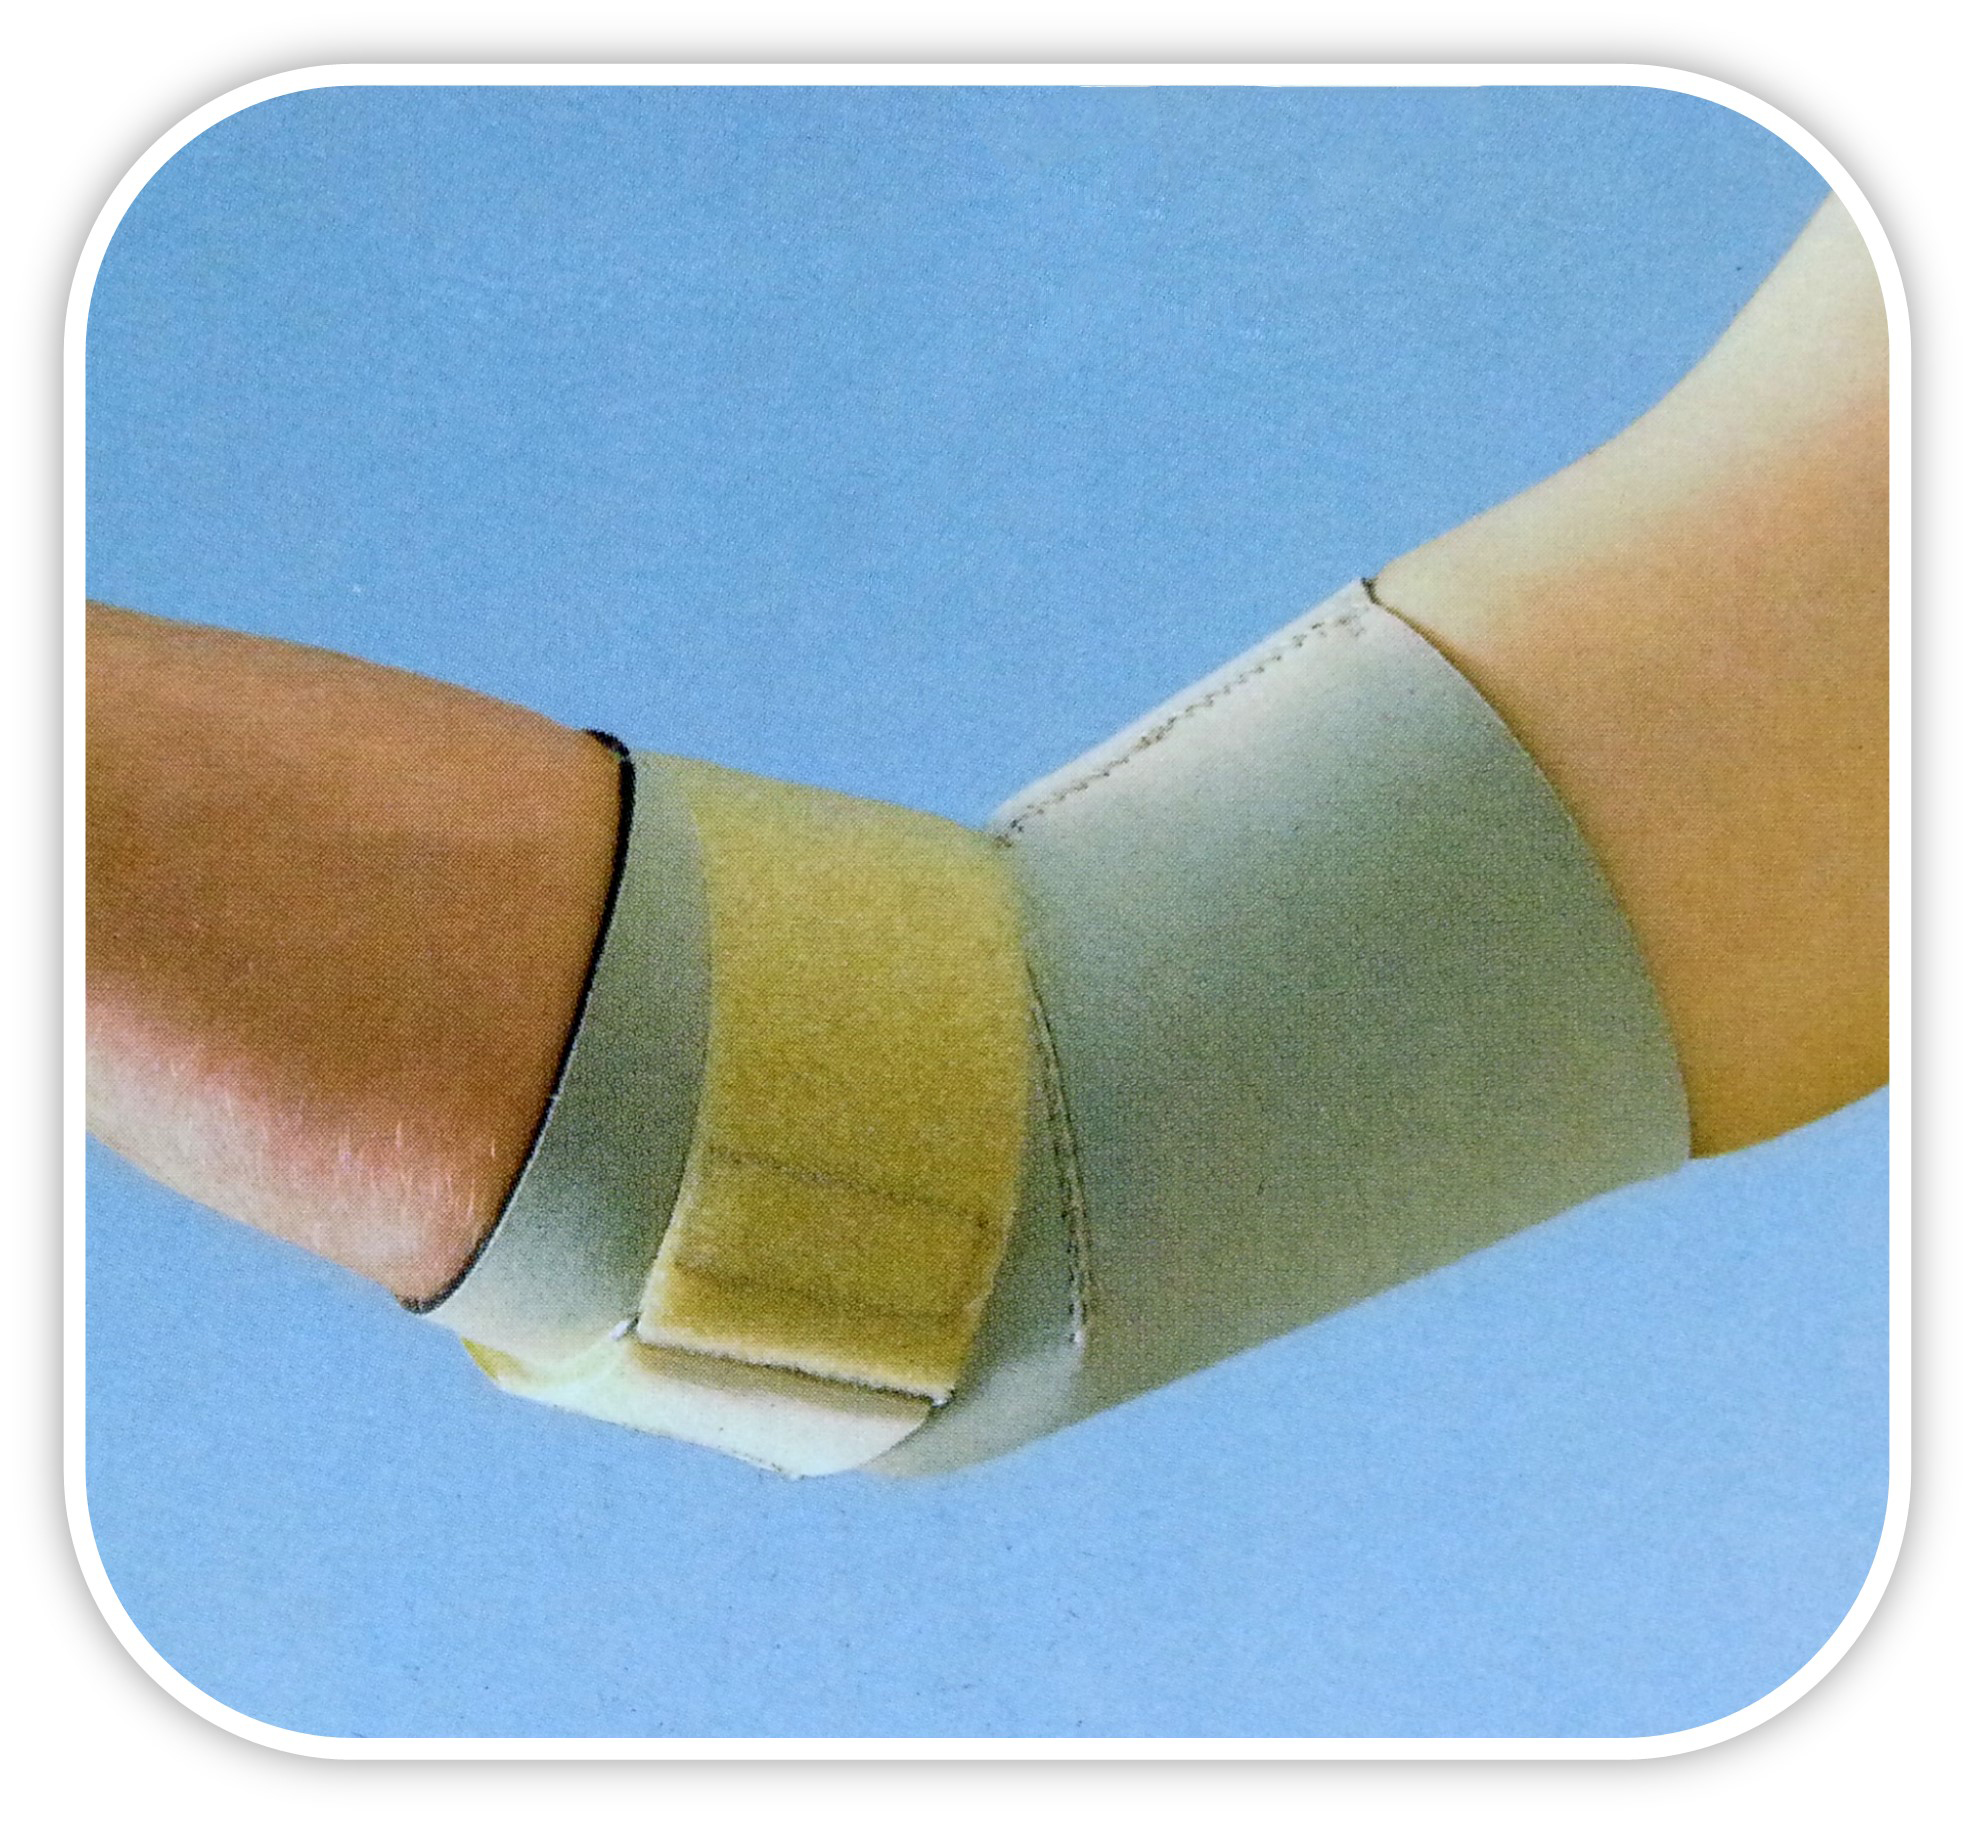 Tennis Elbow Sleeve (SELN2)